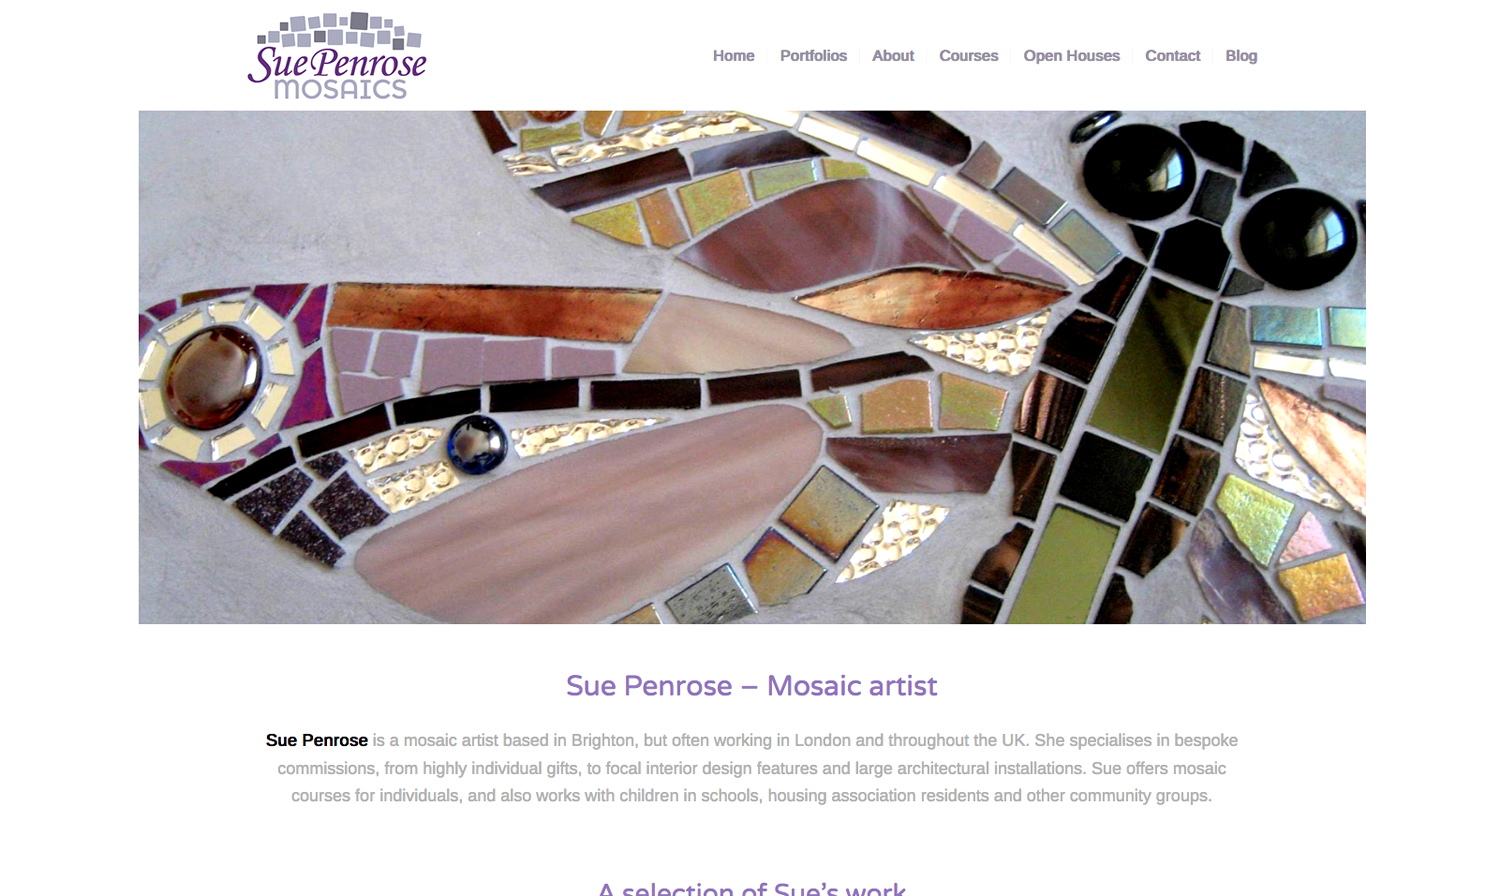 Sue Penrose Mosaics website - designed by Hook Web & Print